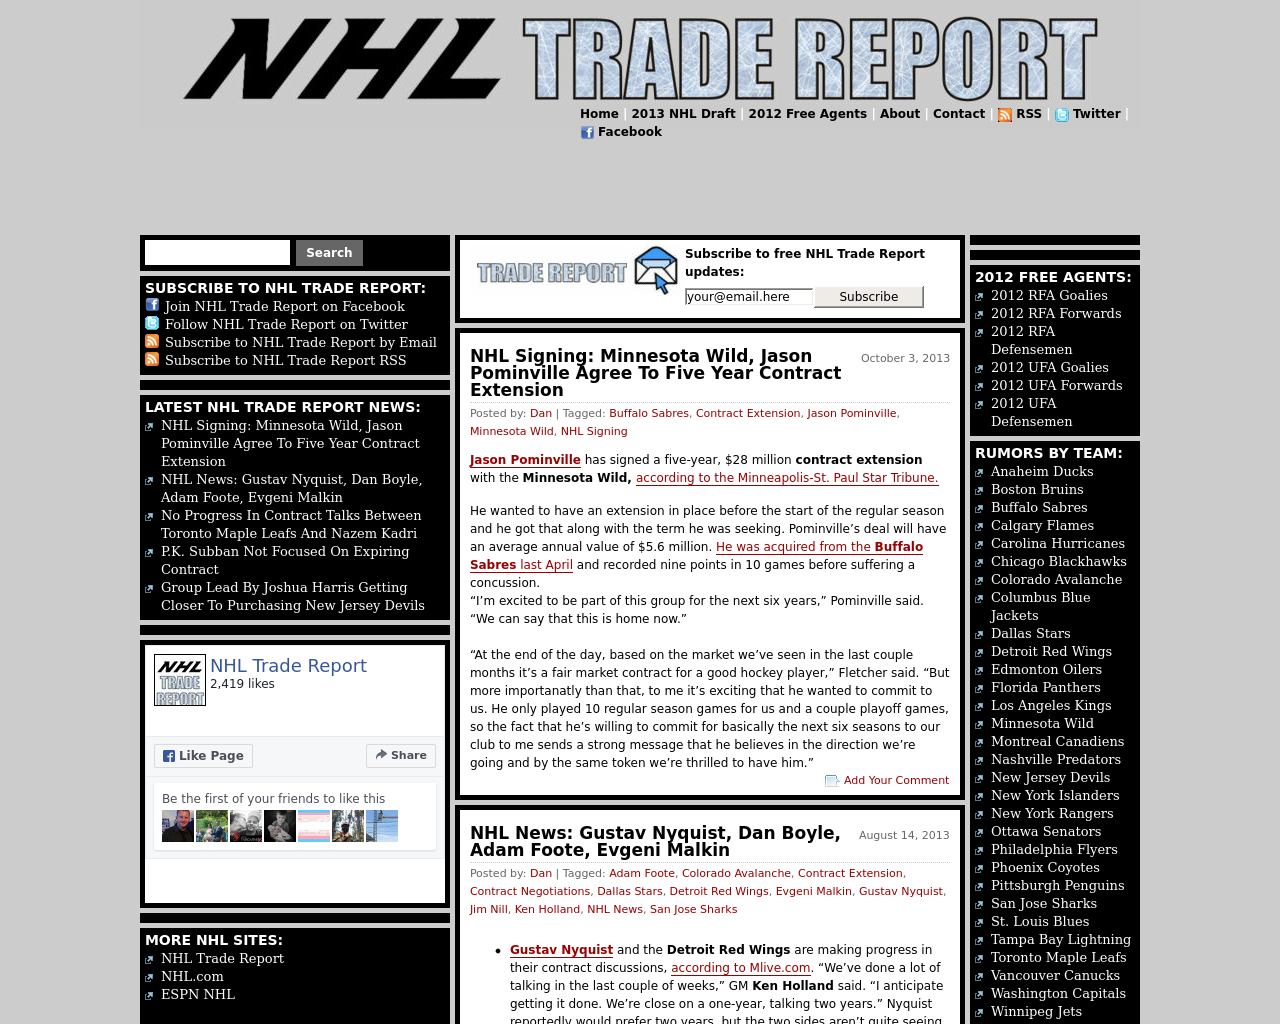 NHL-Trade-Report-Advertising-Reviews-Pricing